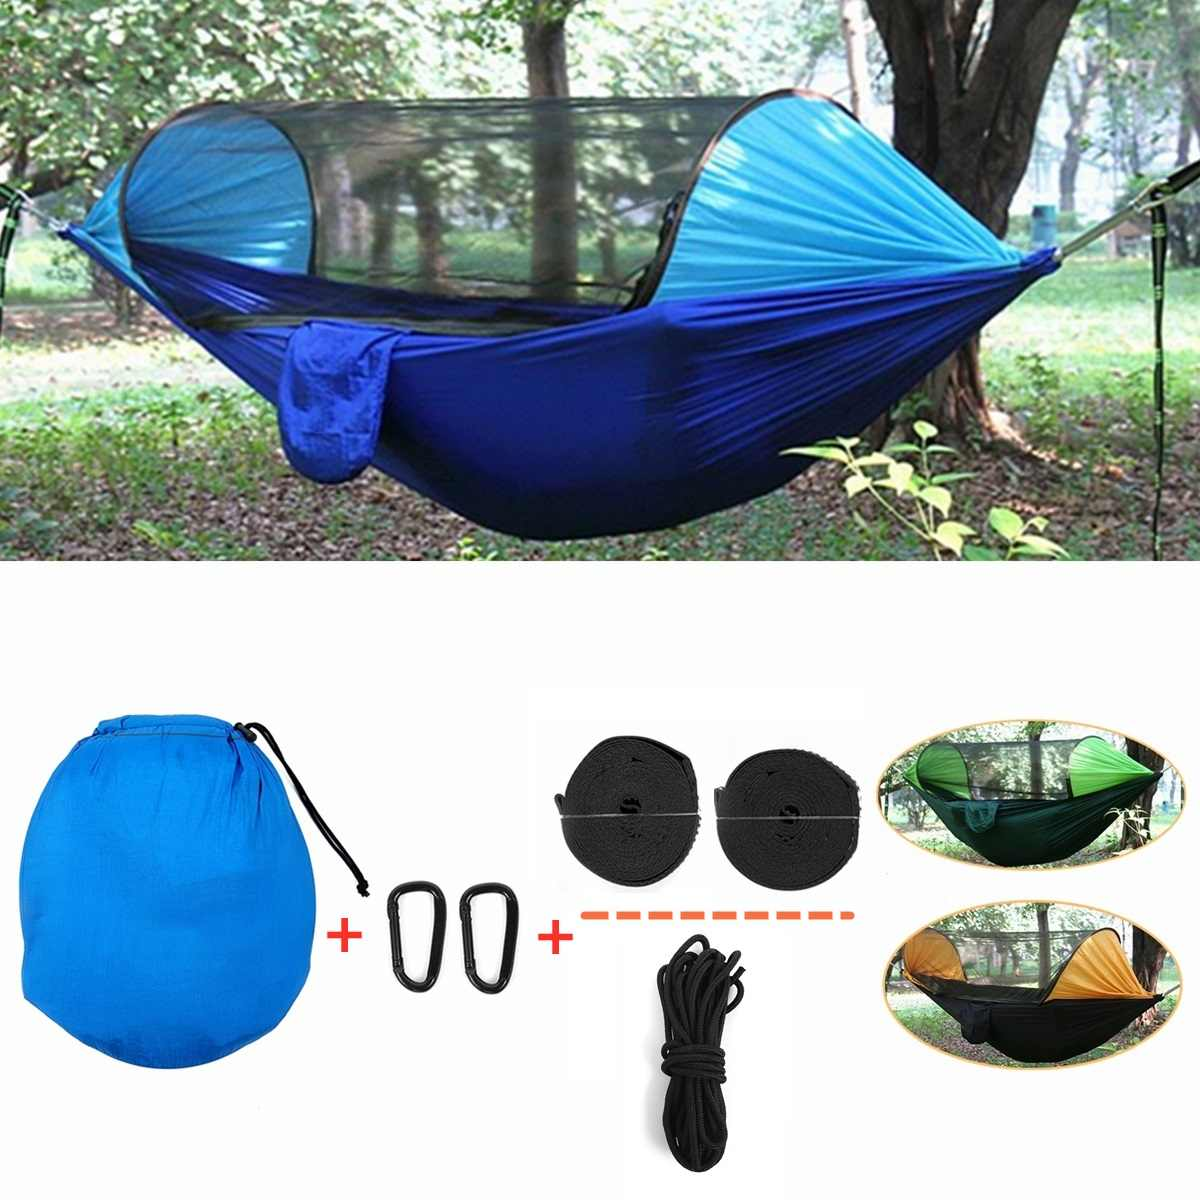 Outdoor Mosquito Net Parachute Hammock Portable Camping Hunting Hanging Sleeping Bed High Strength Sleeping SwingOutdoor Mosquito Net Parachute Hammock Portable Camping Hunting Hanging Sleeping Bed High Strength Sleeping Swing